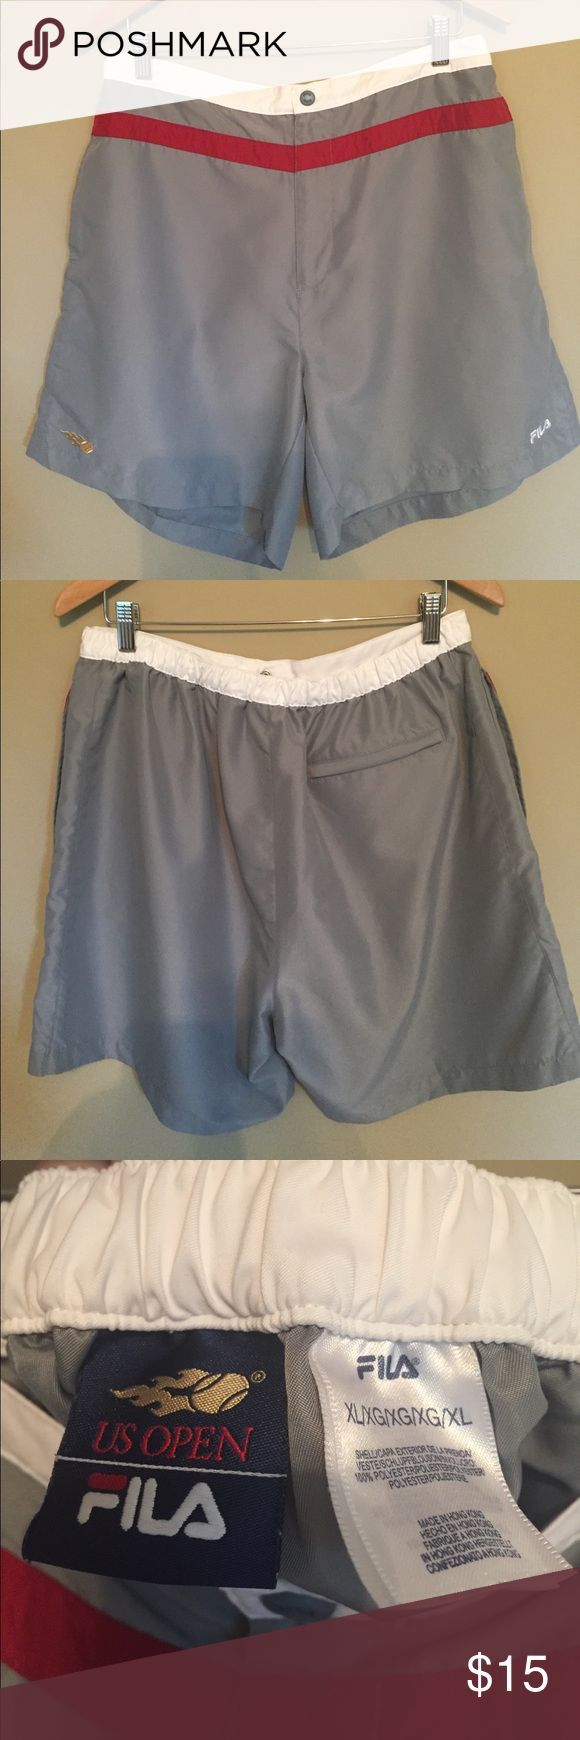 Fila US Open Men's XL tennis shorts Fila US Open Men's XL tennis shorts. Grey with burgundy/red stripe with white waistband. Barely worn! Matching shirt available as well. 🎾 Fila Shorts Athletic